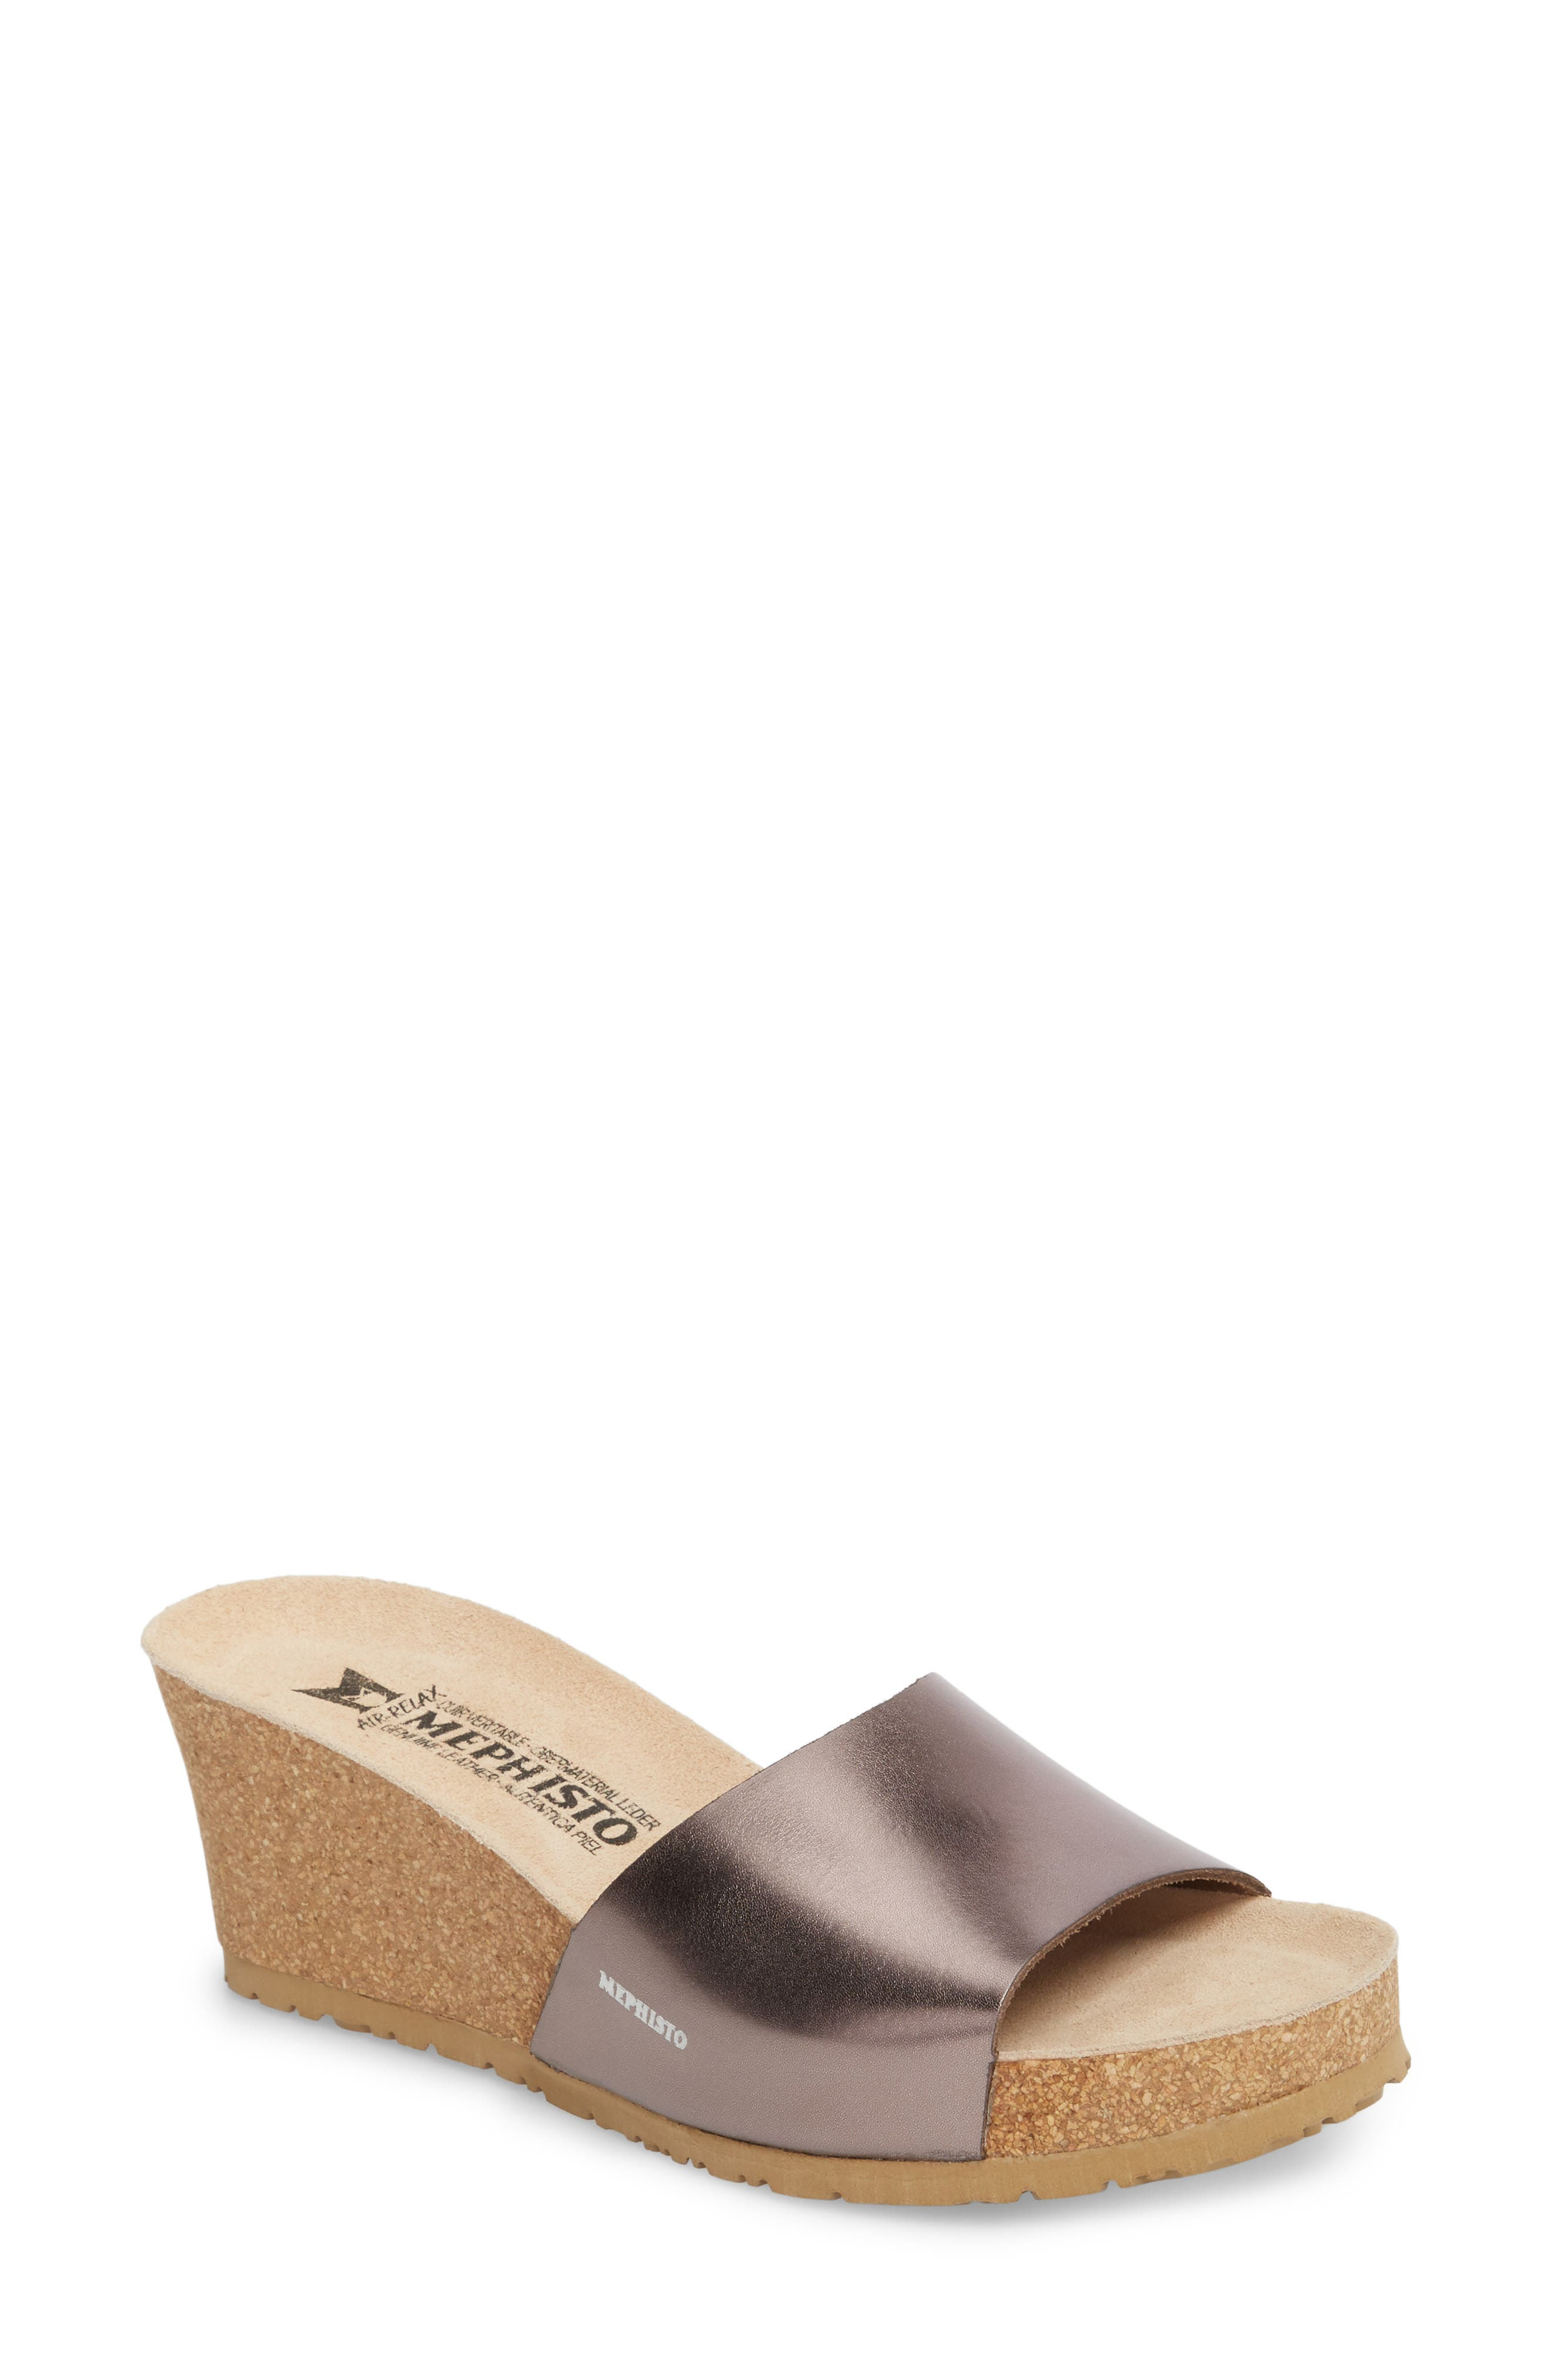 Lise Platform Wedge Sandal,                             Main thumbnail 1, color,                             BRONZE STAR LEATHER